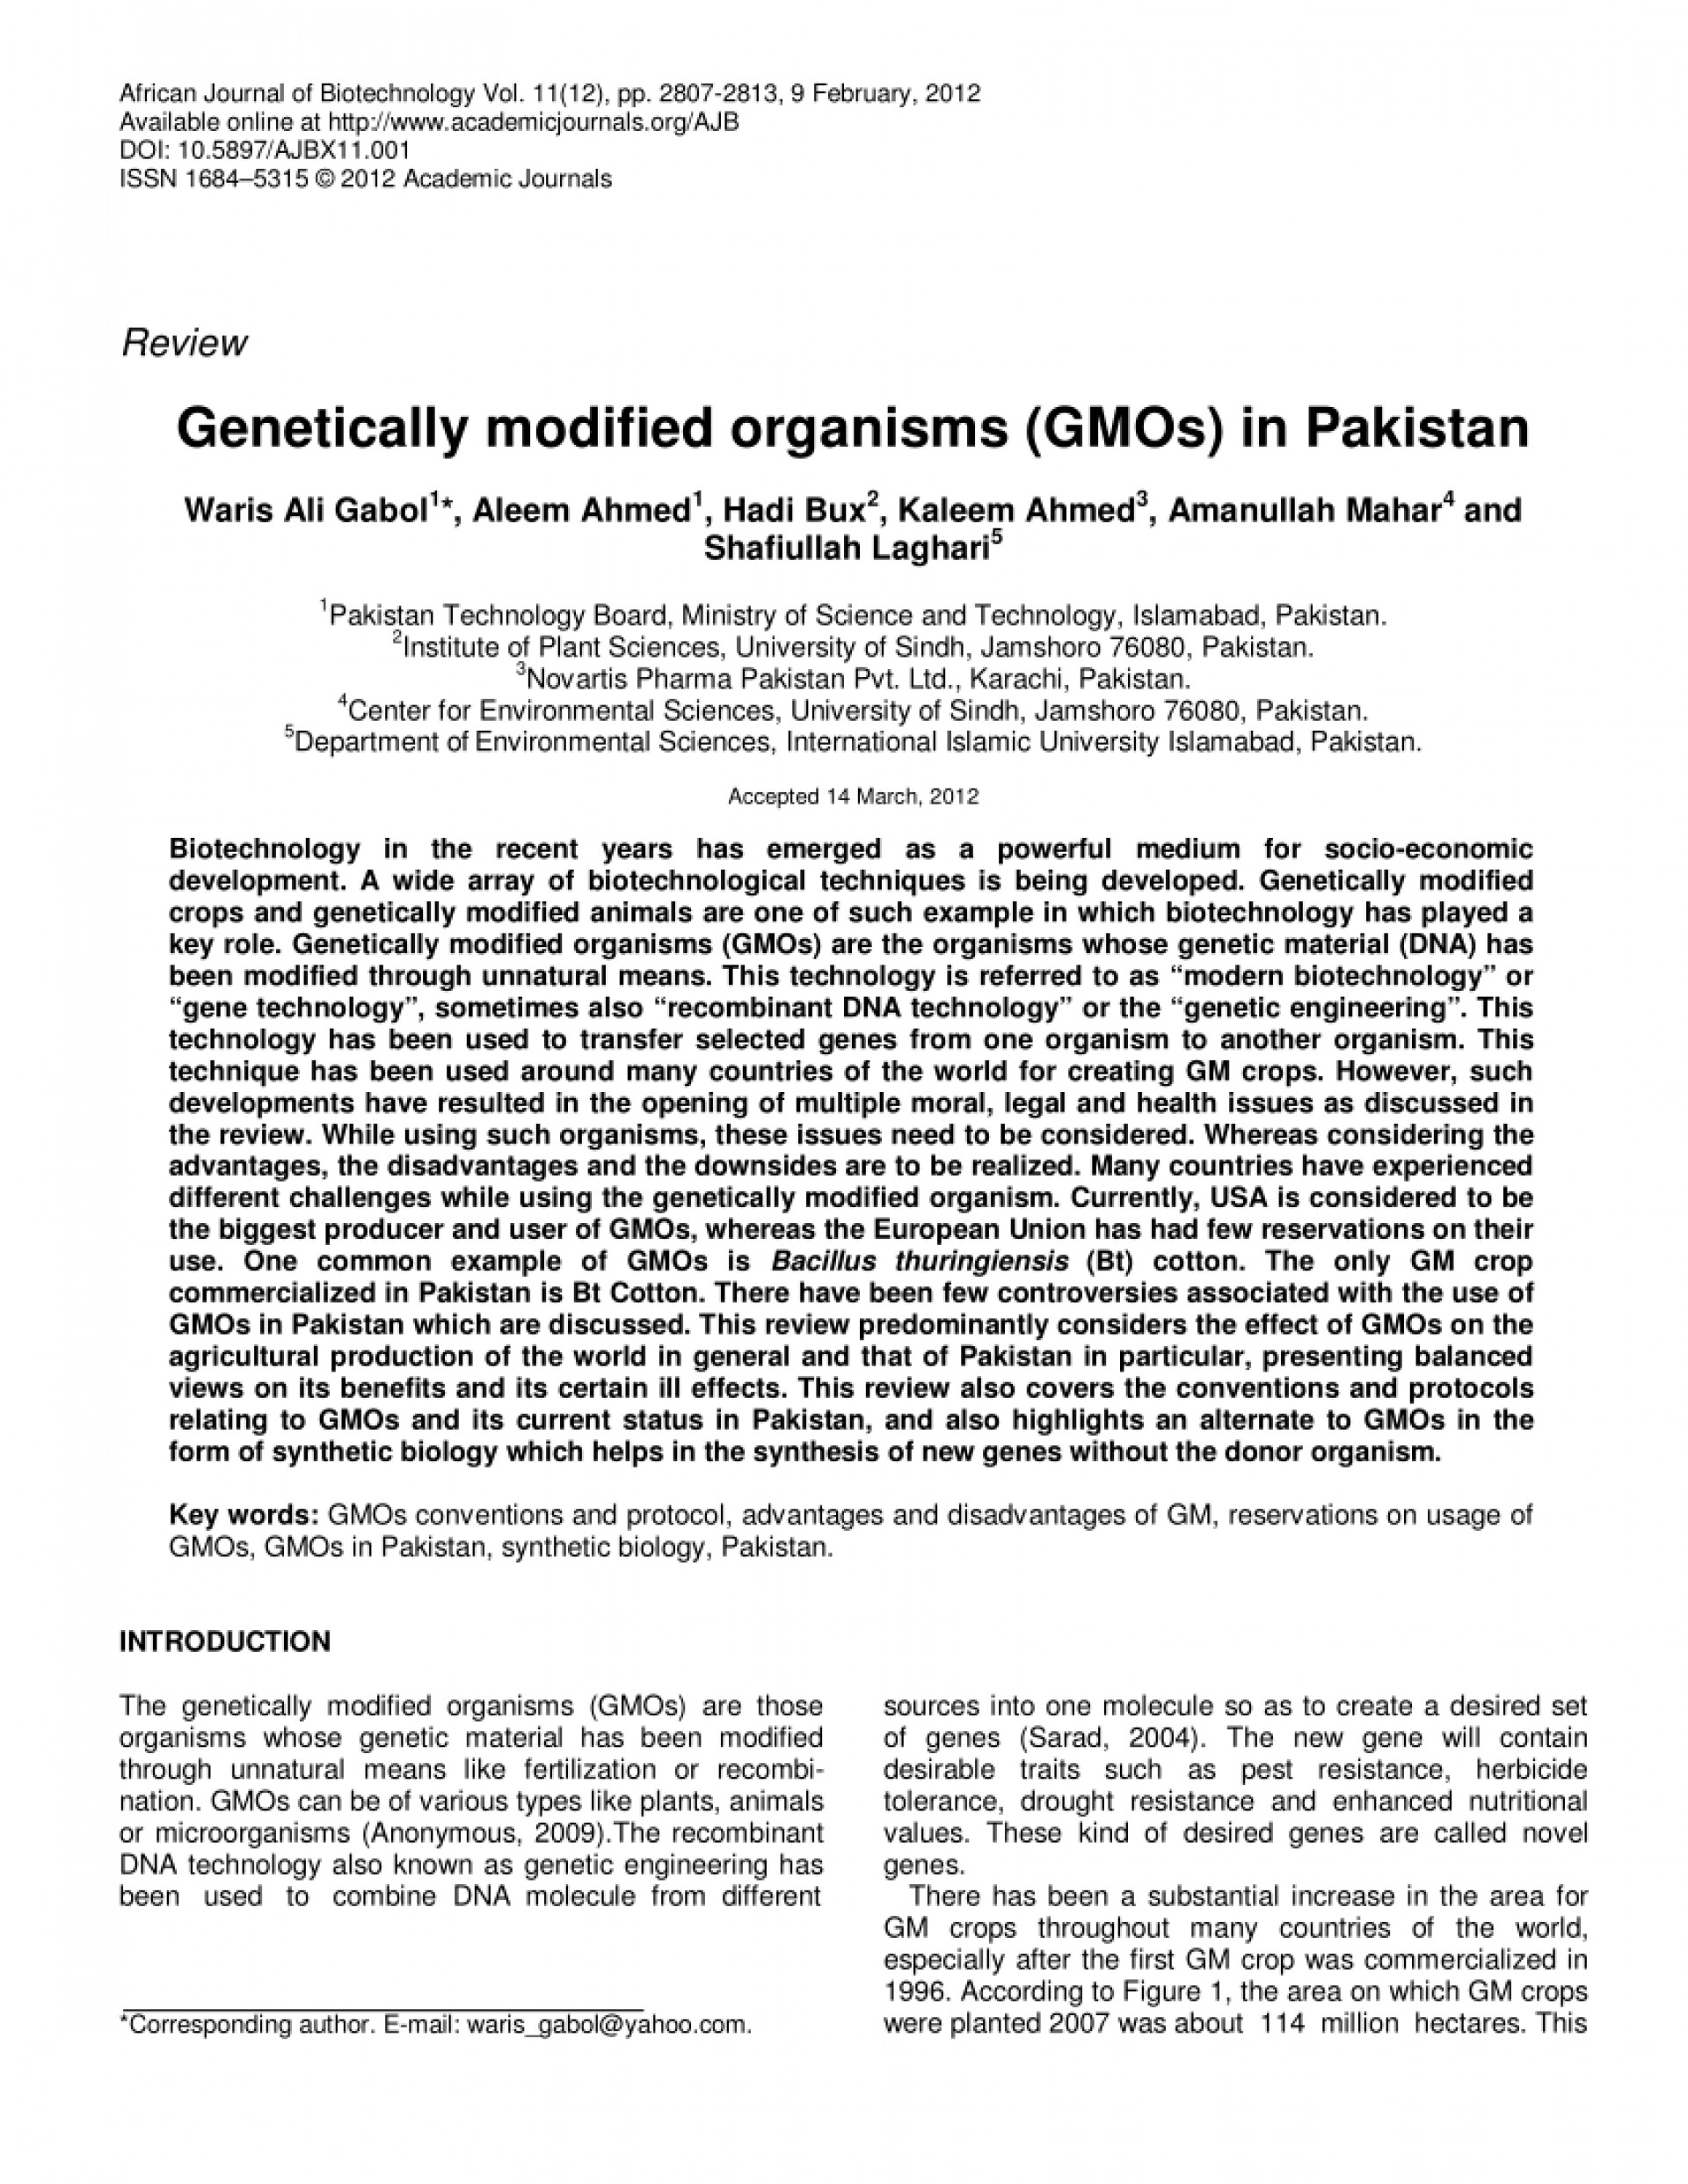 004 Gmo Research Paper Introduction Shocking 1920